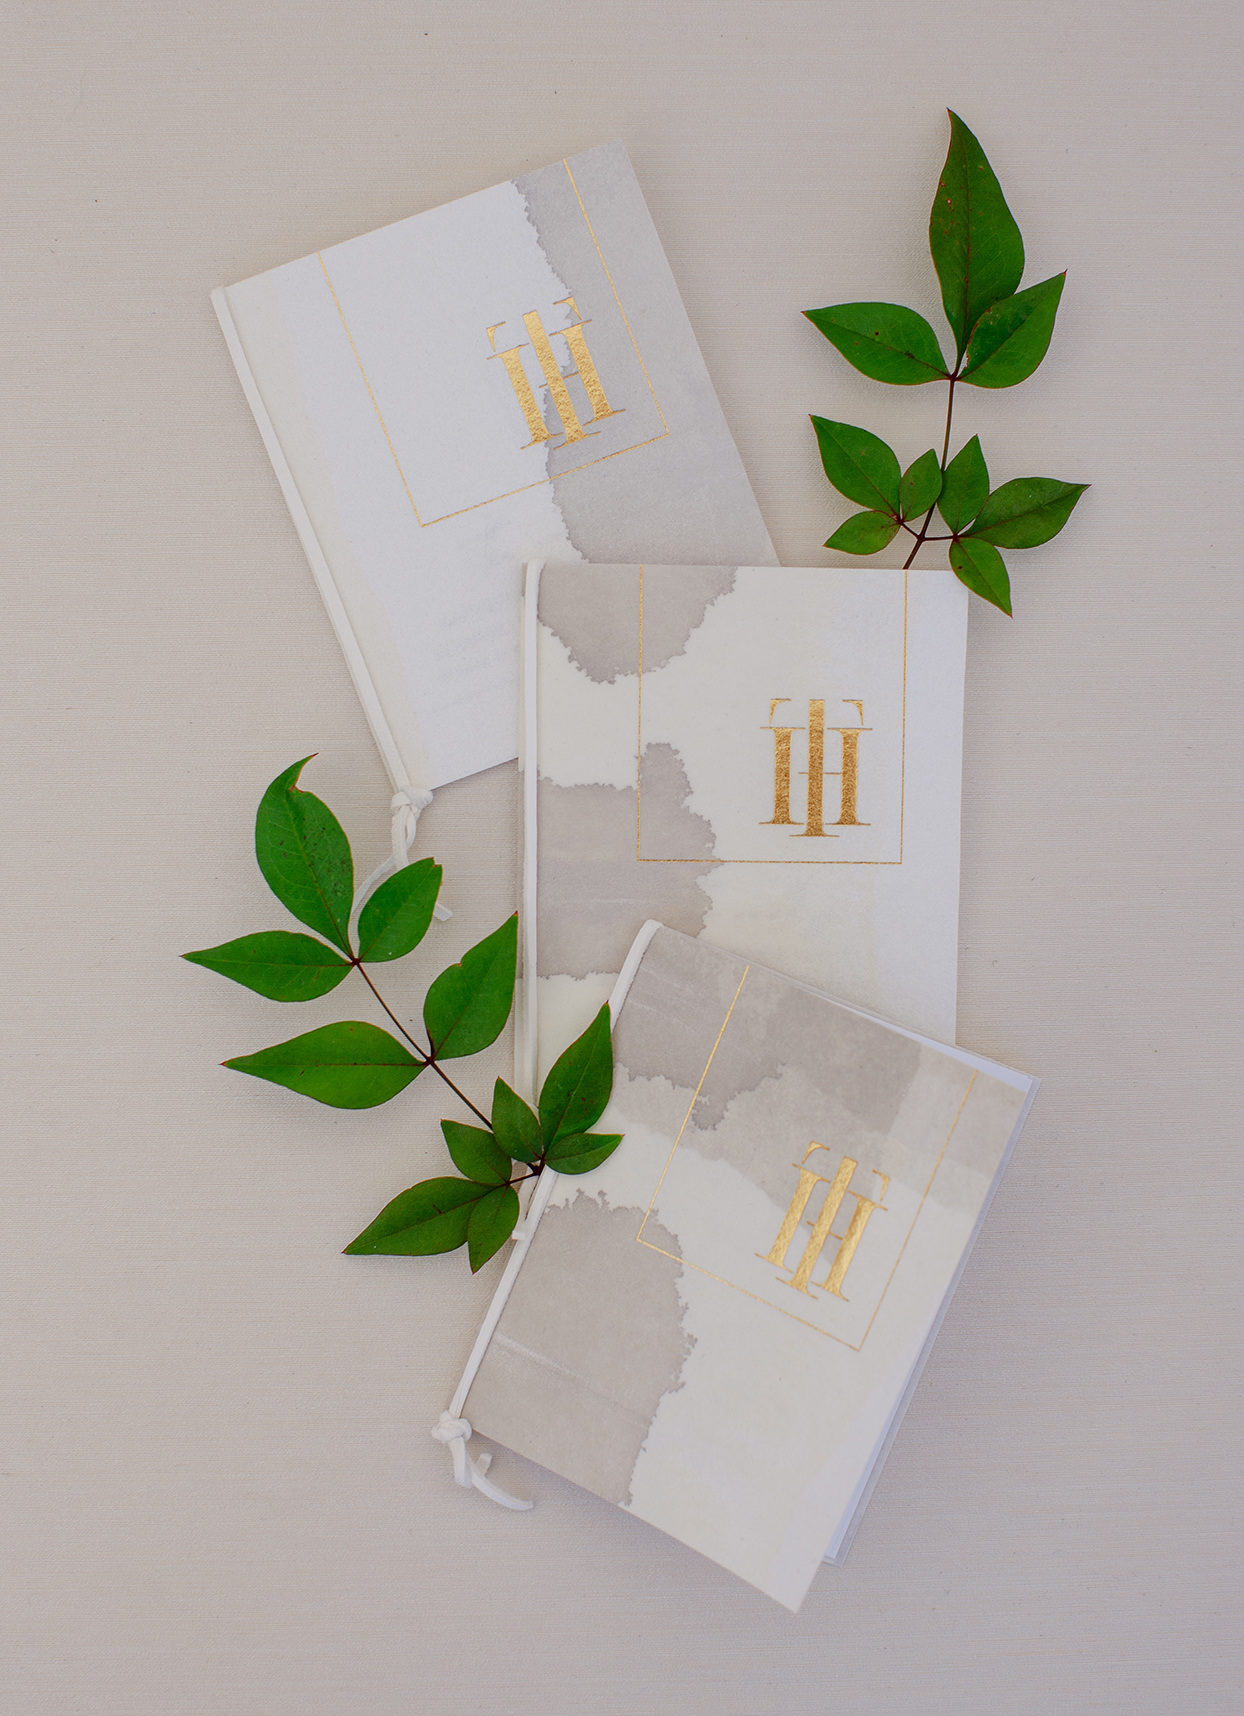 white and gray paper design with gold foil lettering ceremony programs